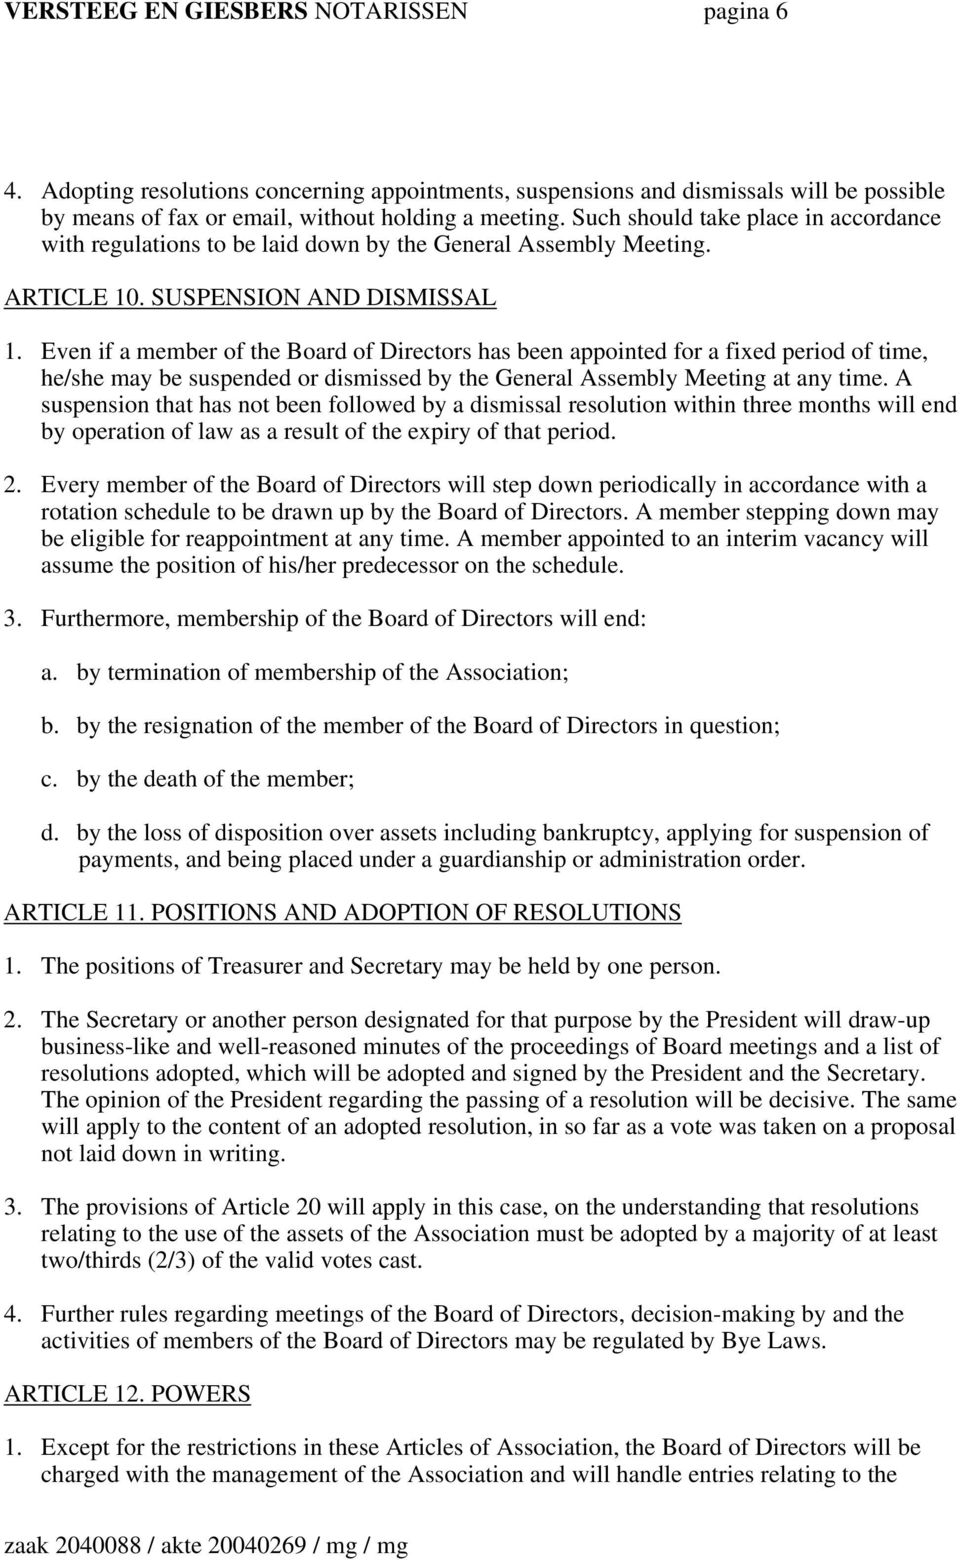 Even if a member of the Board of Directors has been appointed for a fixed period of time, he/she may be suspended or dismissed by the General Assembly Meeting at any time.